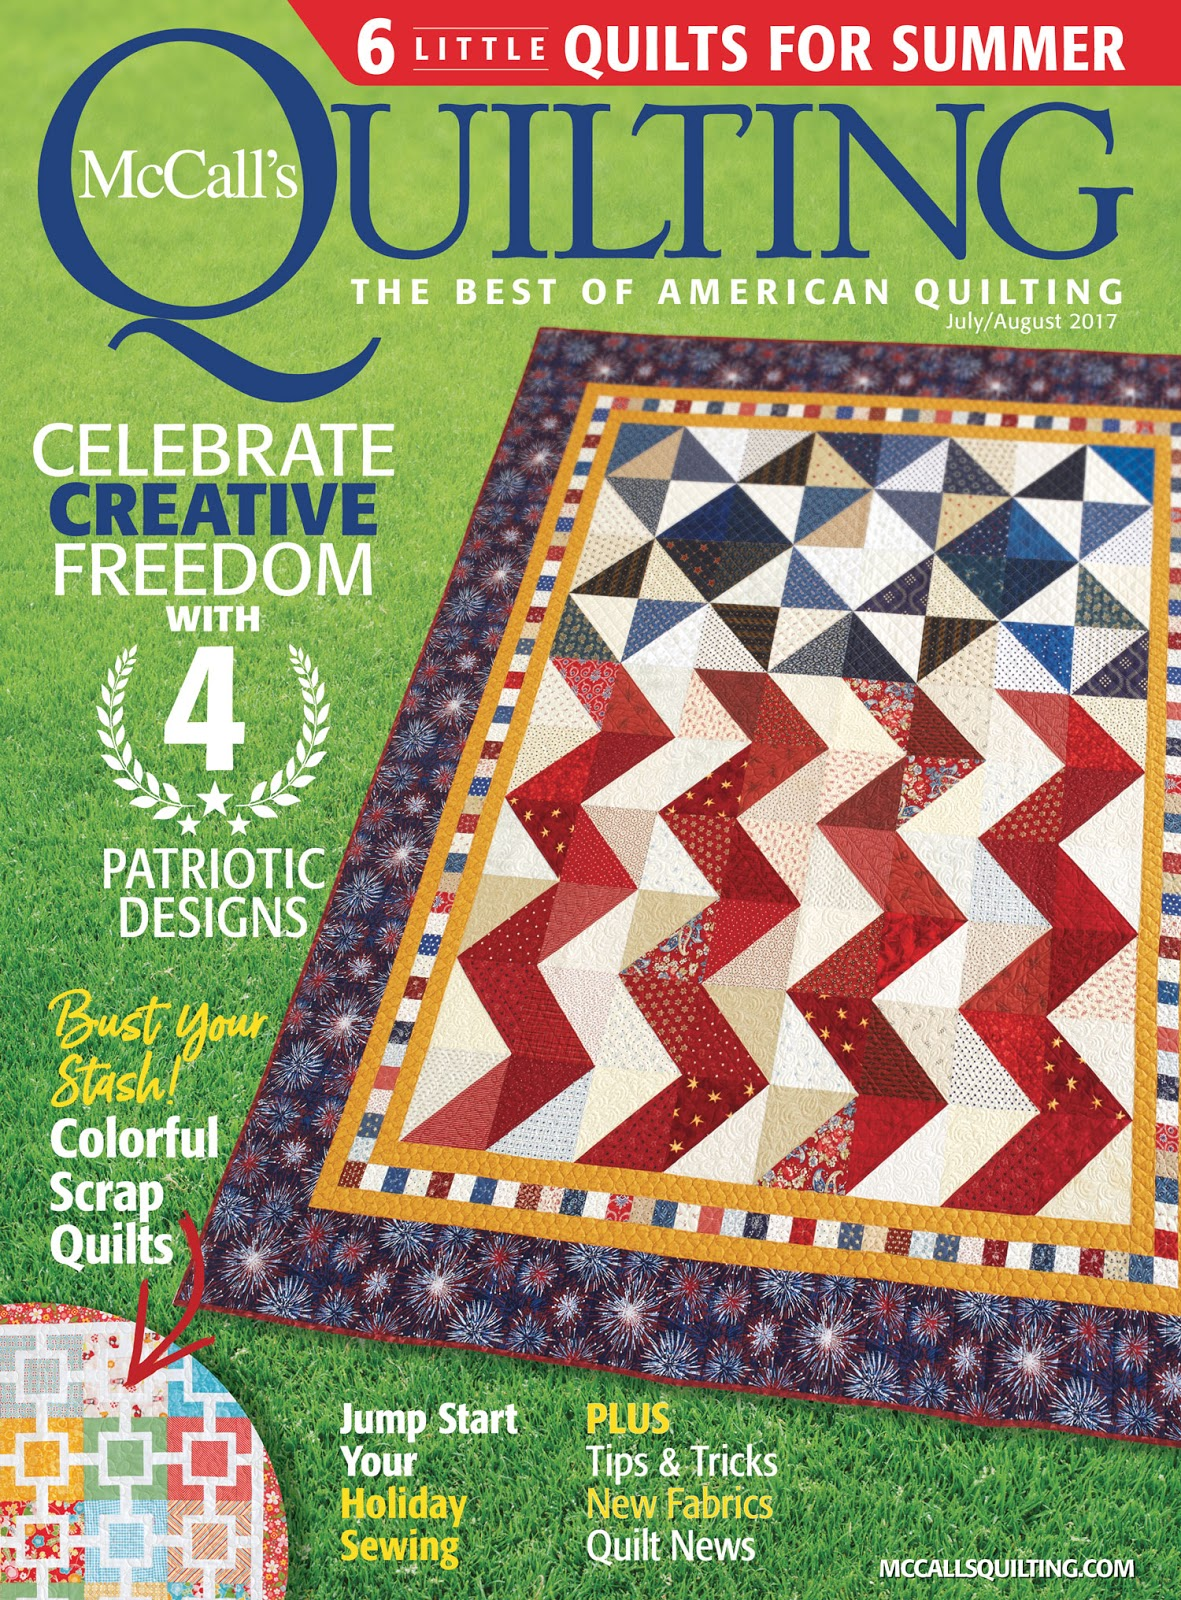 Happy Quilting Star Crossed Featured In Mccalls Quilting